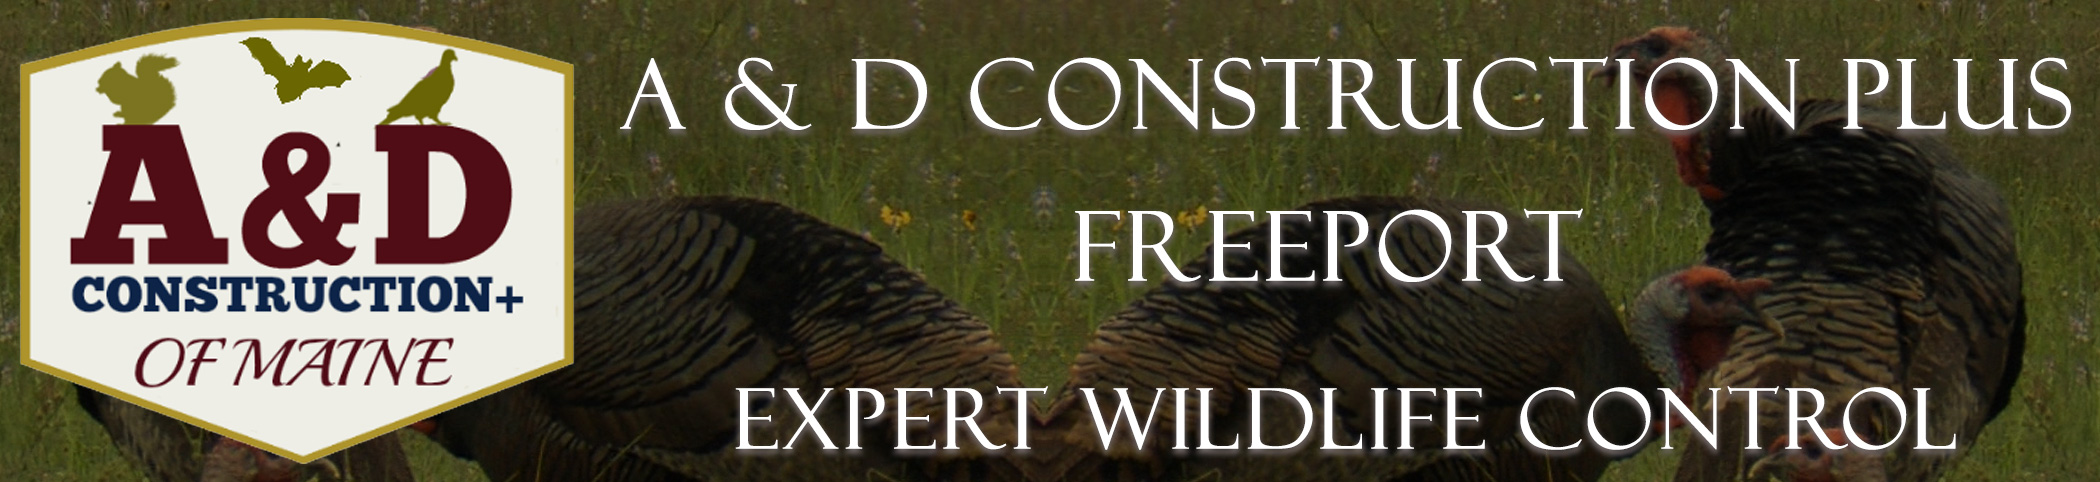 A AND D Construction PLUS Bat Removal Freeport Maine